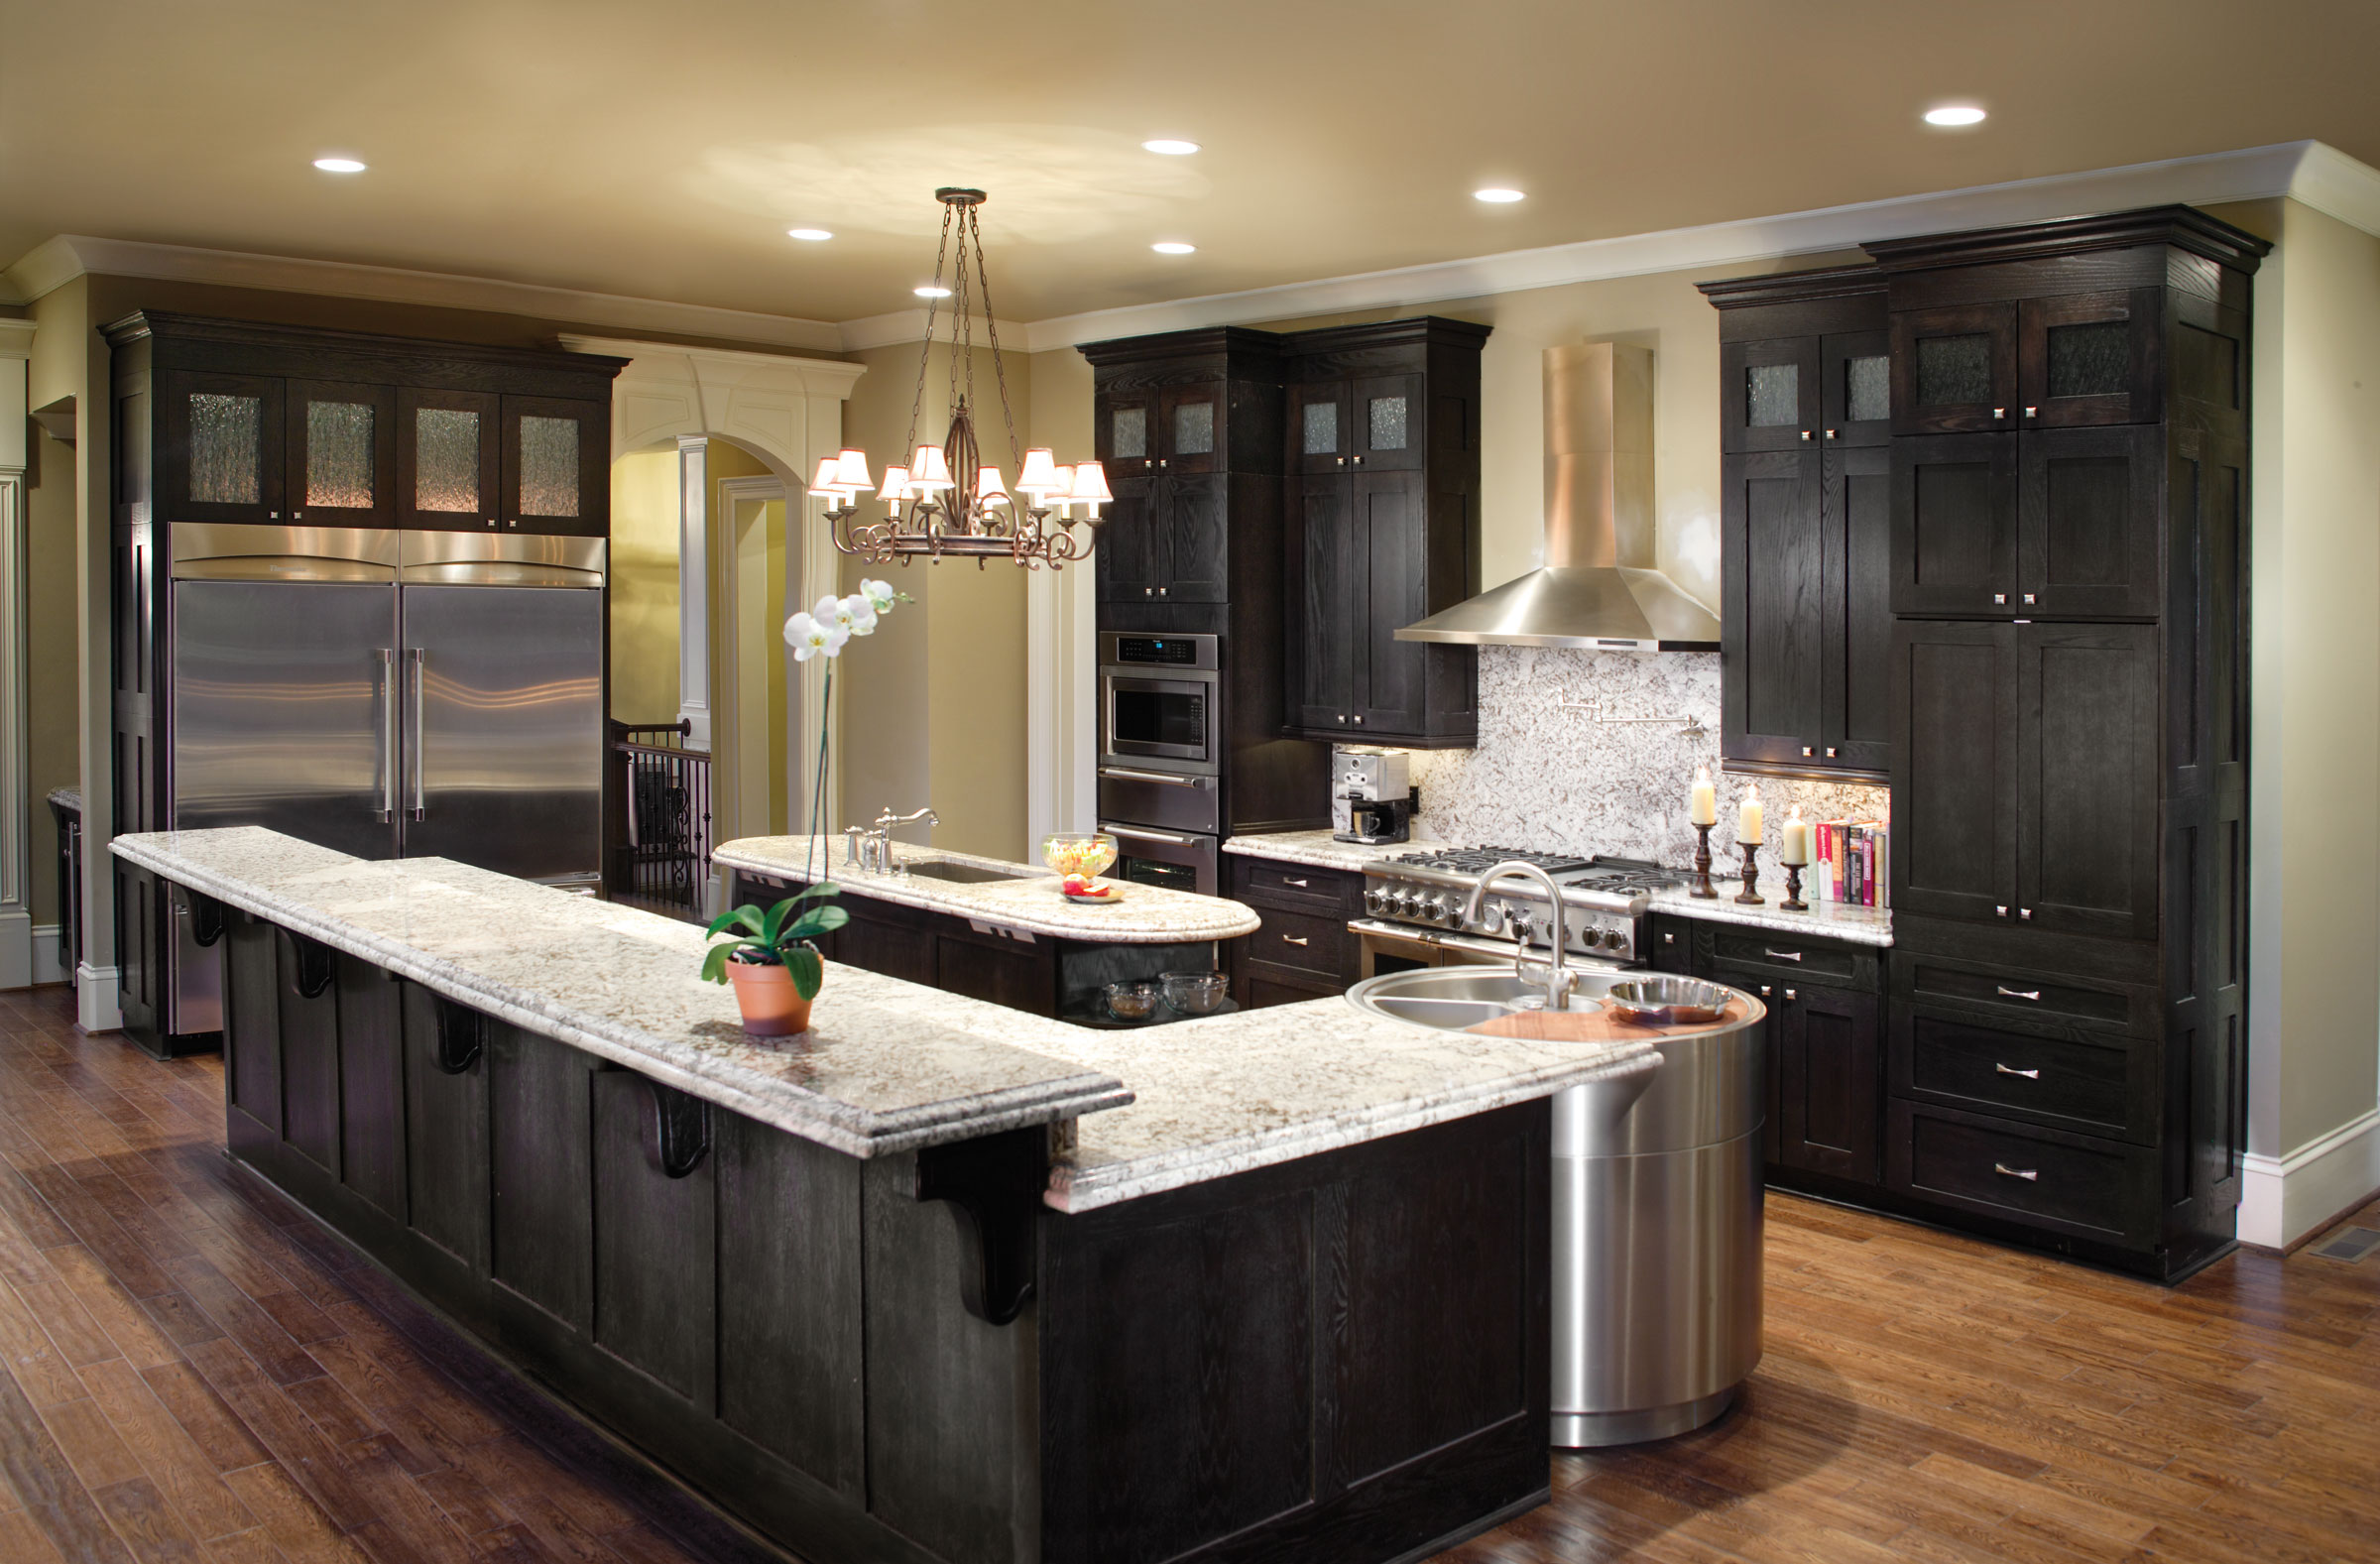 Custom bathroom kitchen cabinets phoenix cabinets by for Kitchen and bathroom cabinets